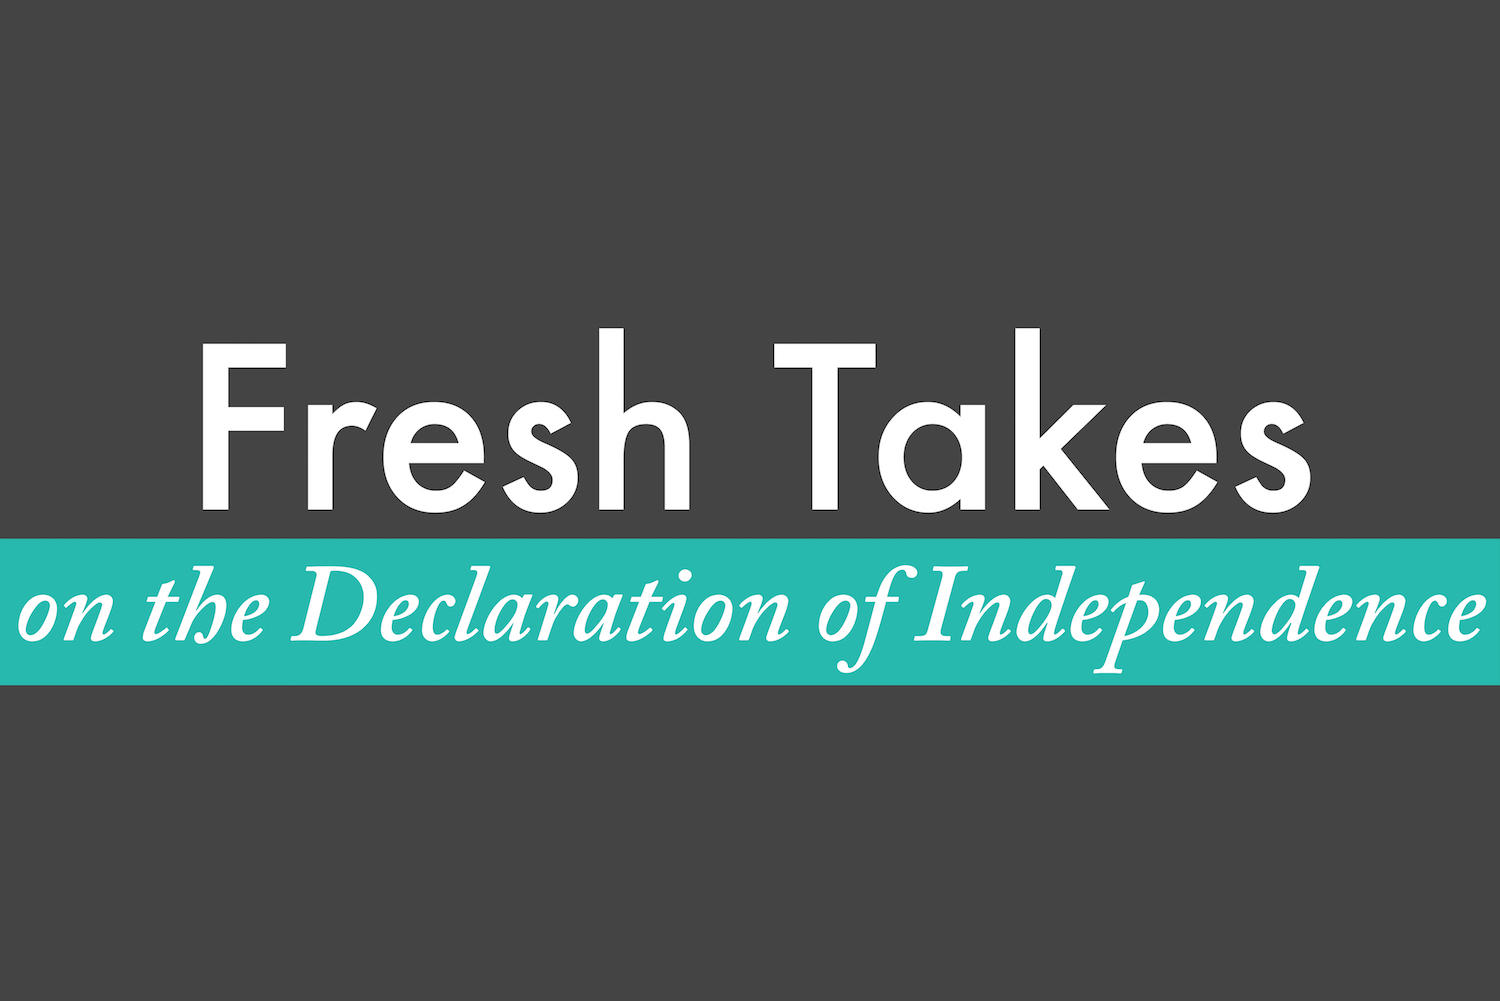 Fresh Takes on the Declaration of Independence